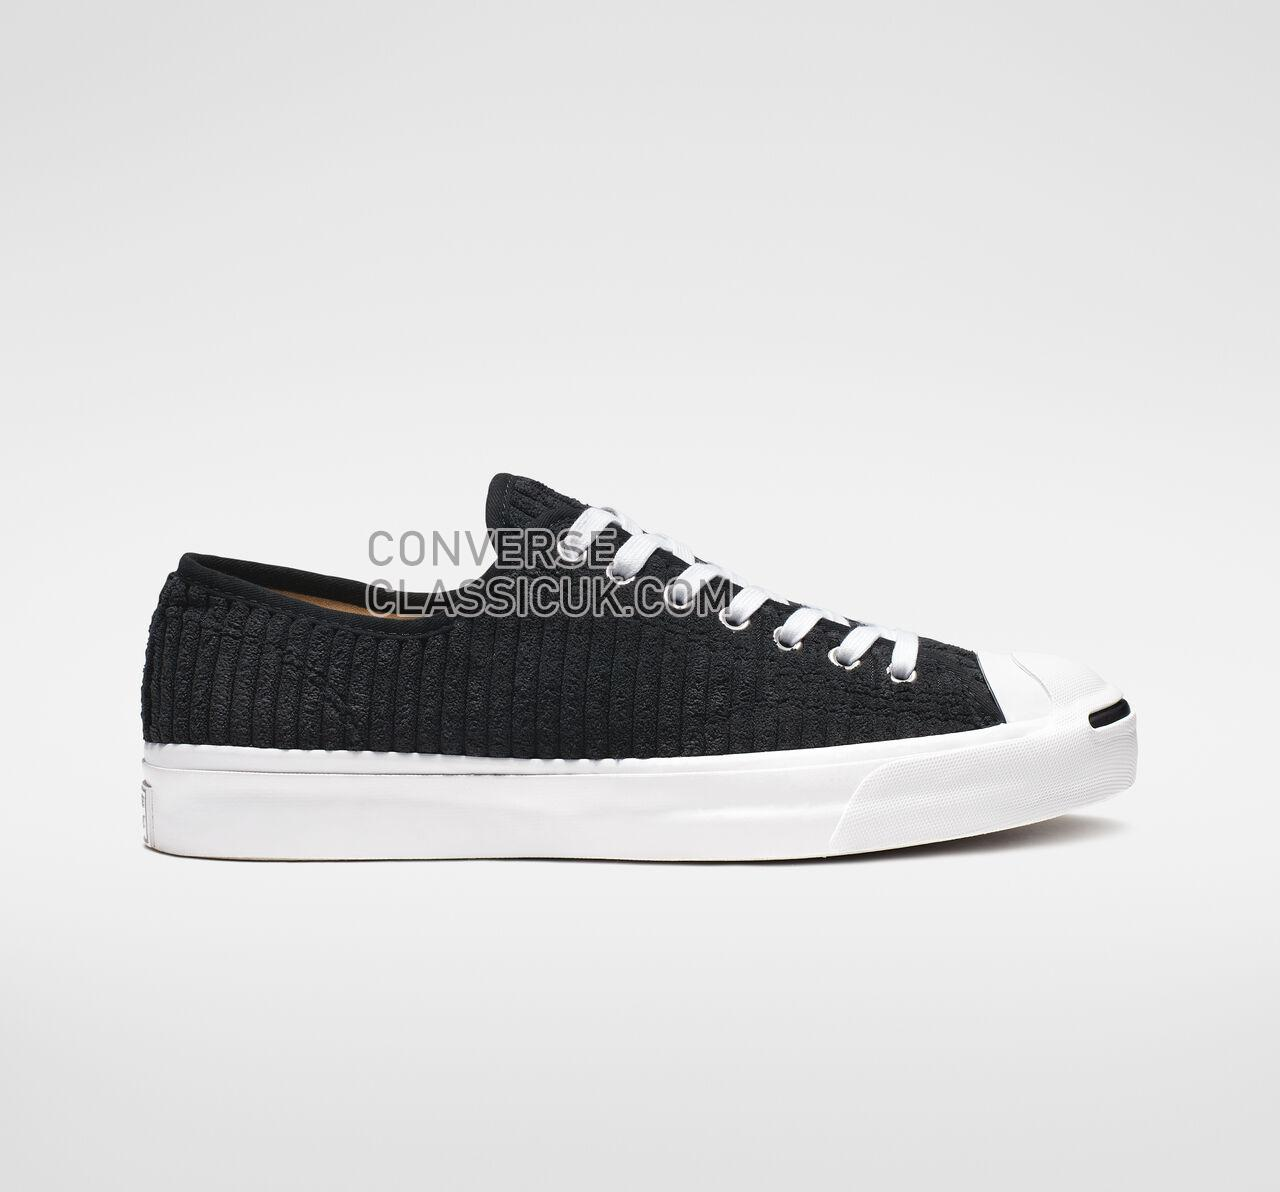 Converse Jack Purcell Wide Wale Cord Low Top Mens Womens Unisex 165139C Black/White/Black Shoes